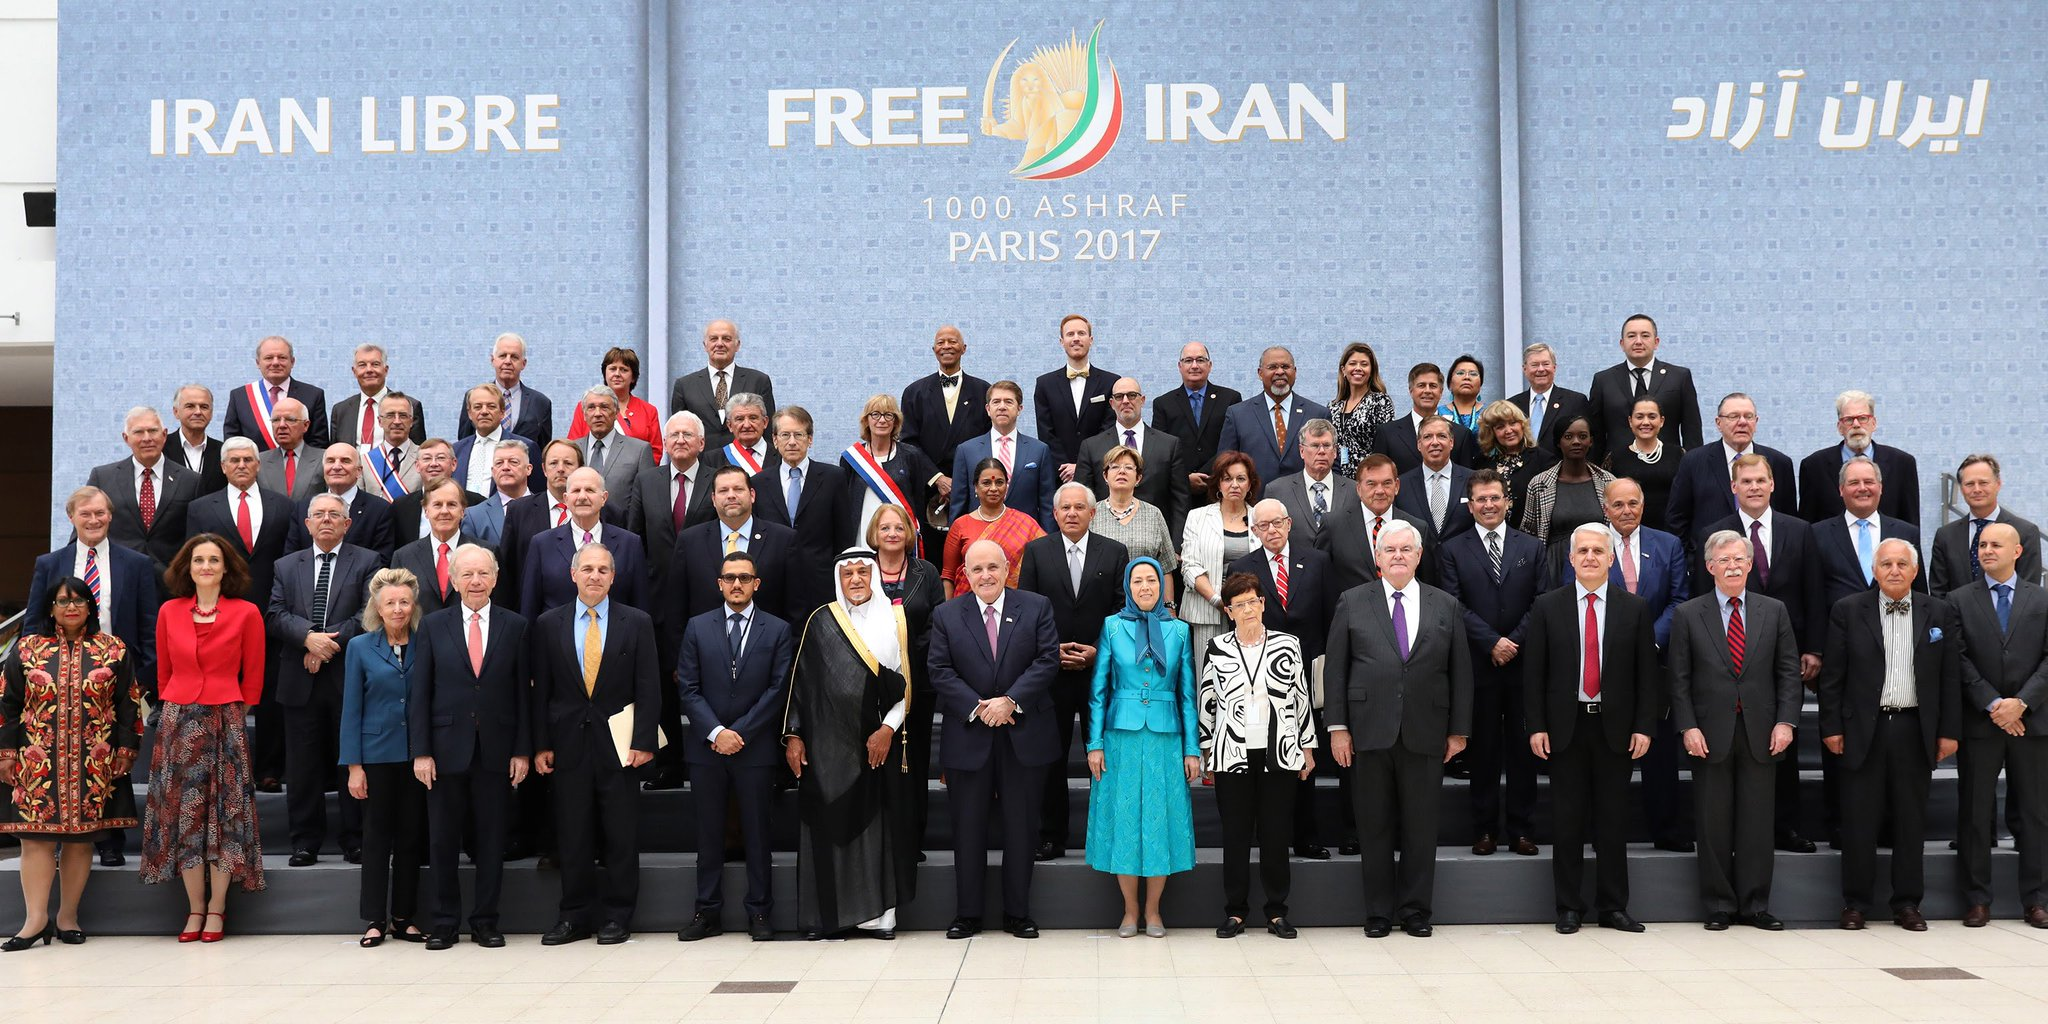 Maryam Rajavi with distinguished personalities and Iranian Resistance supporters #FreeIran Gathering, Villepinte, July 1, 2017 https://t.co/LsbGGMSxXy